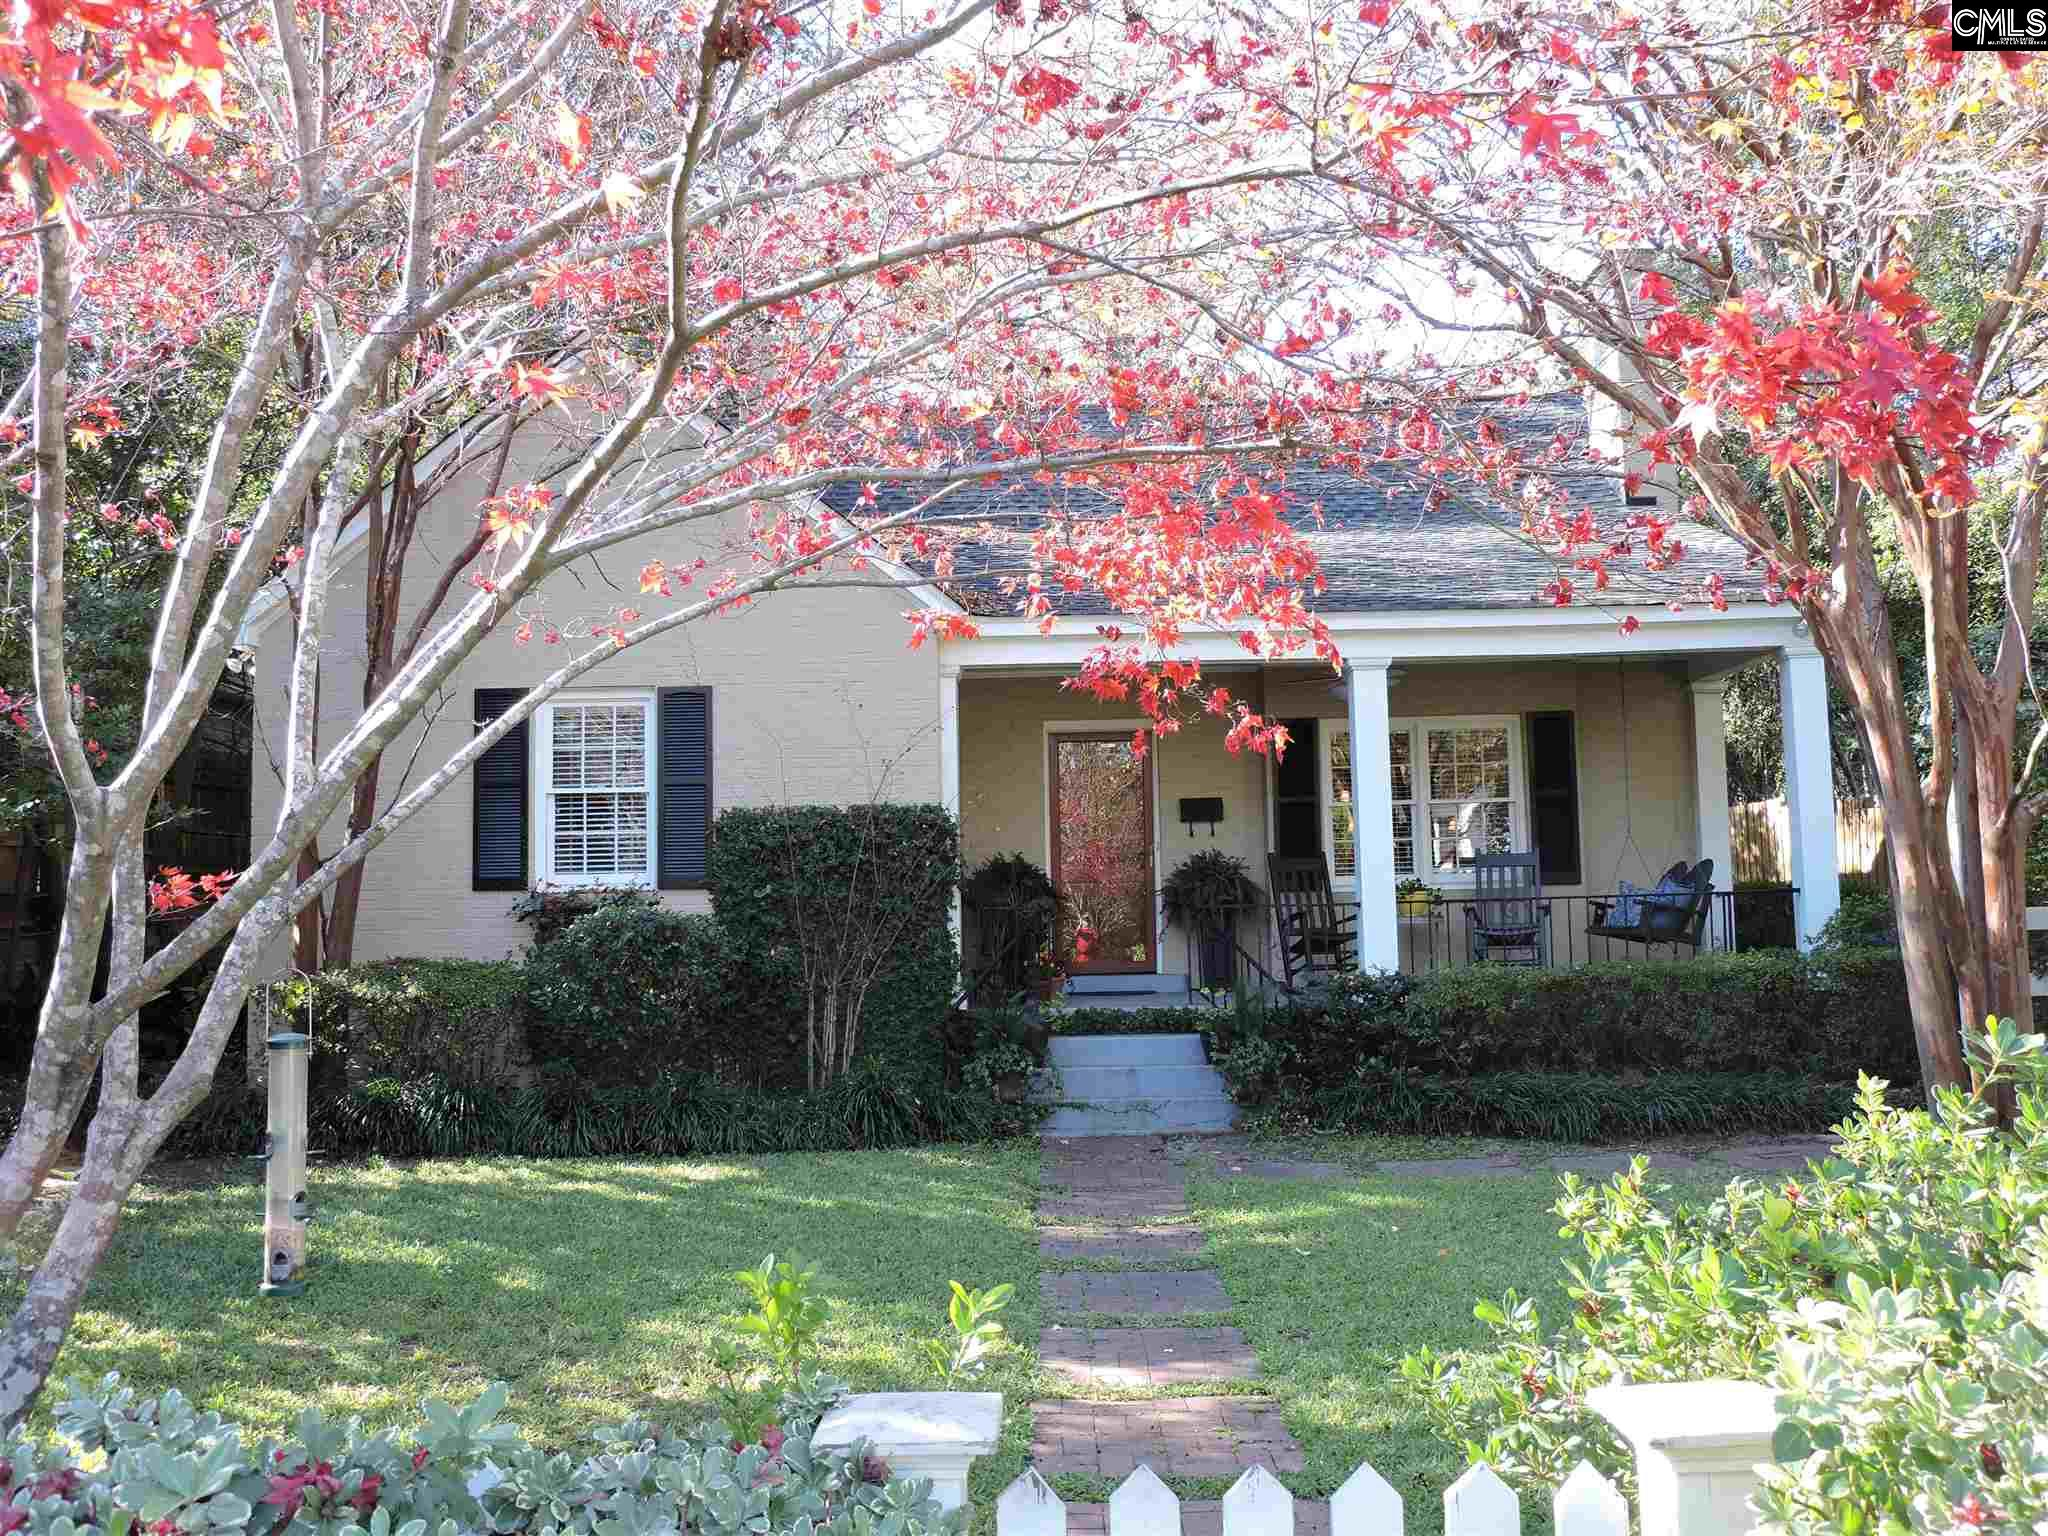 807 Poinsettia Columbia, SC 29205